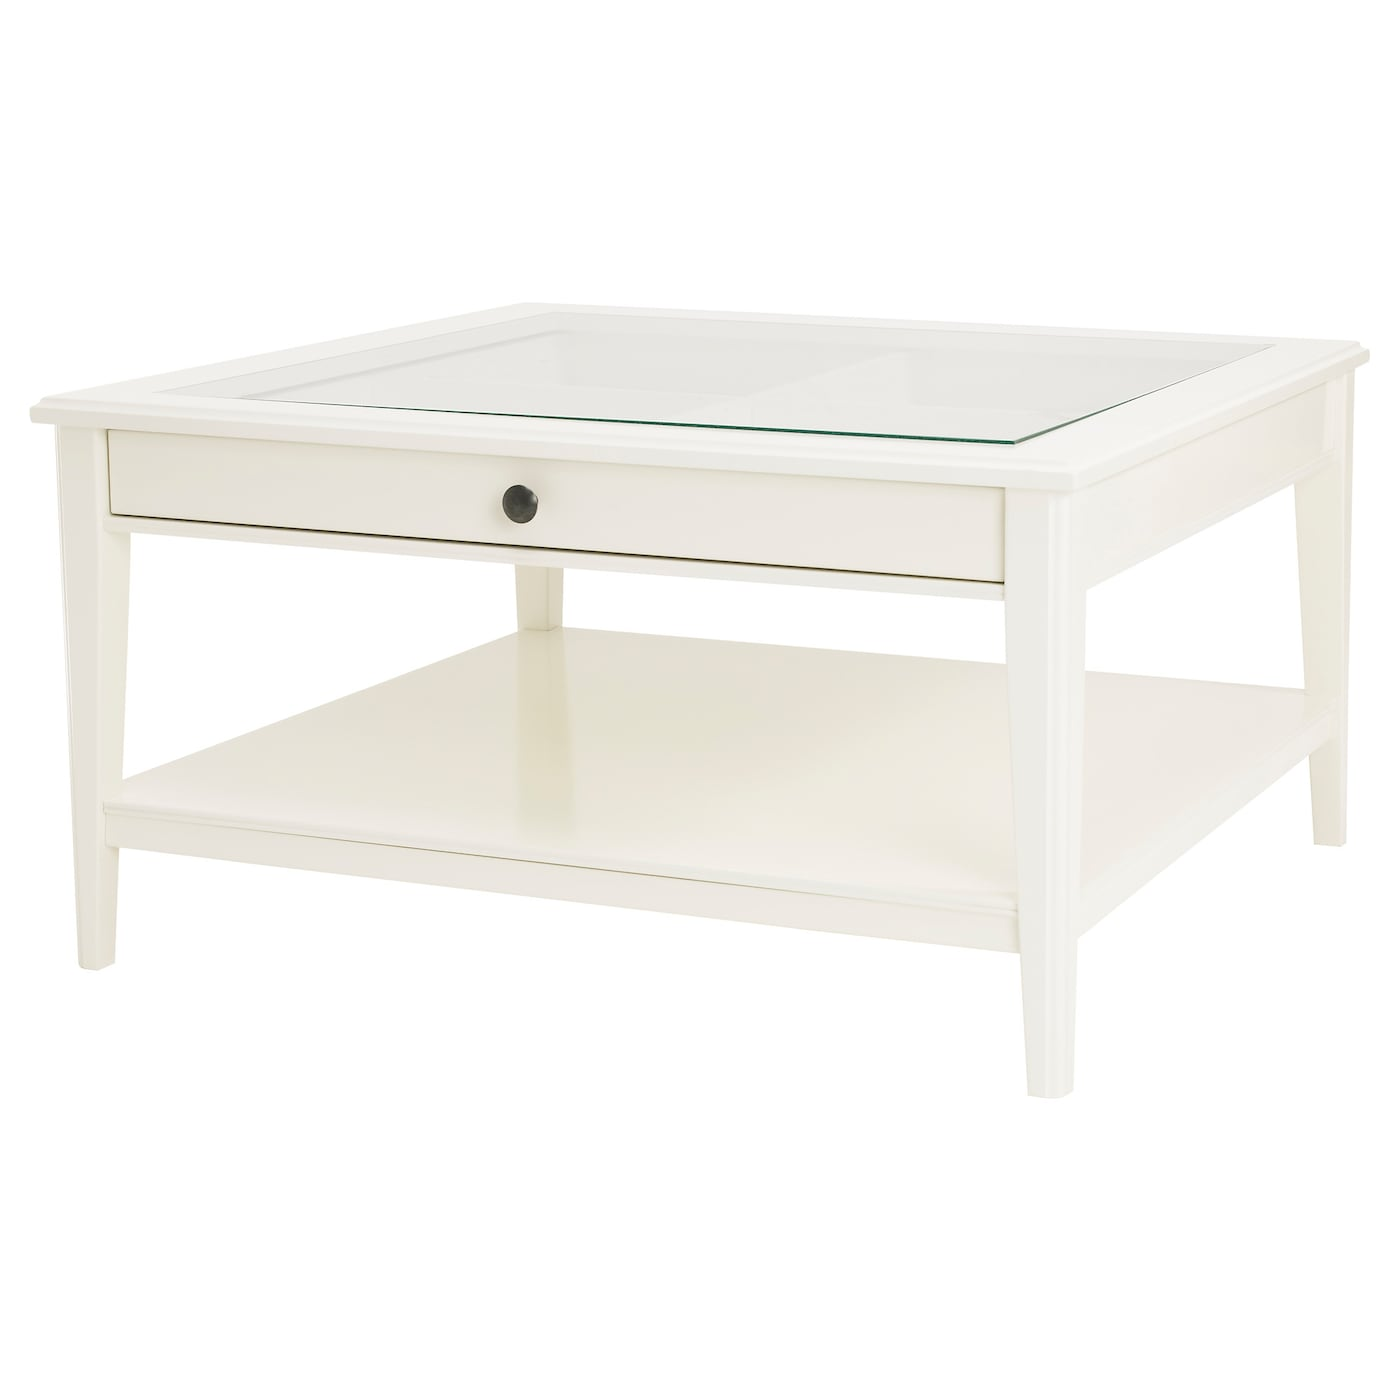 Liatorp coffee table whiteglass 93x93 cm ikea ikea liatorp coffee table practical storage space underneath the table top geotapseo Choice Image